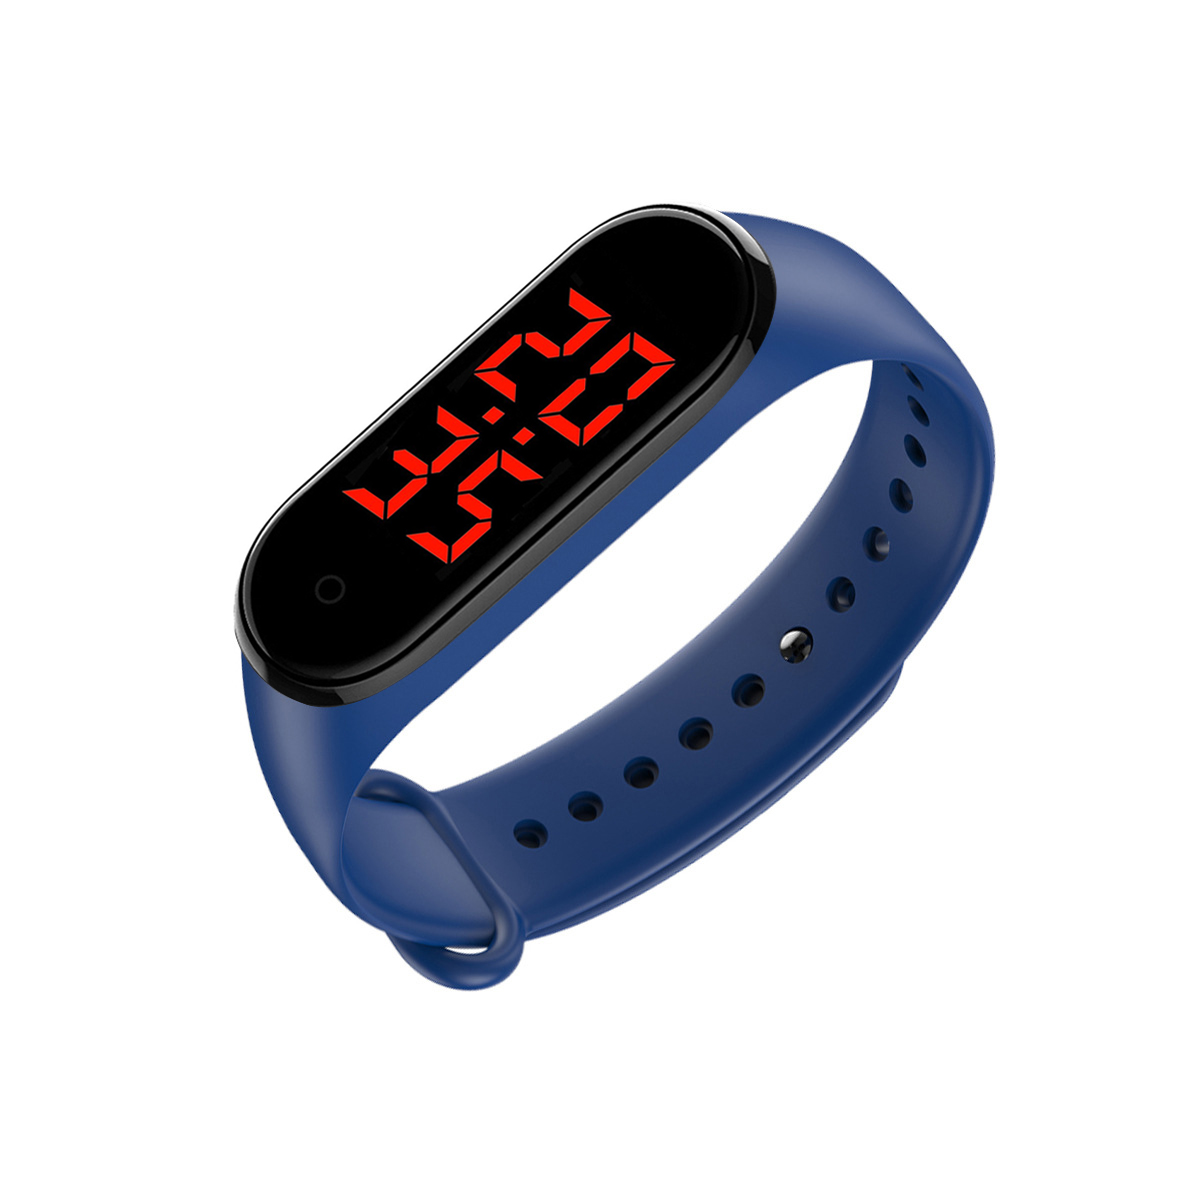 Smart Band LED Display Body Temperature Measurement Touch Screen Smart Bracelet blue_Boxed